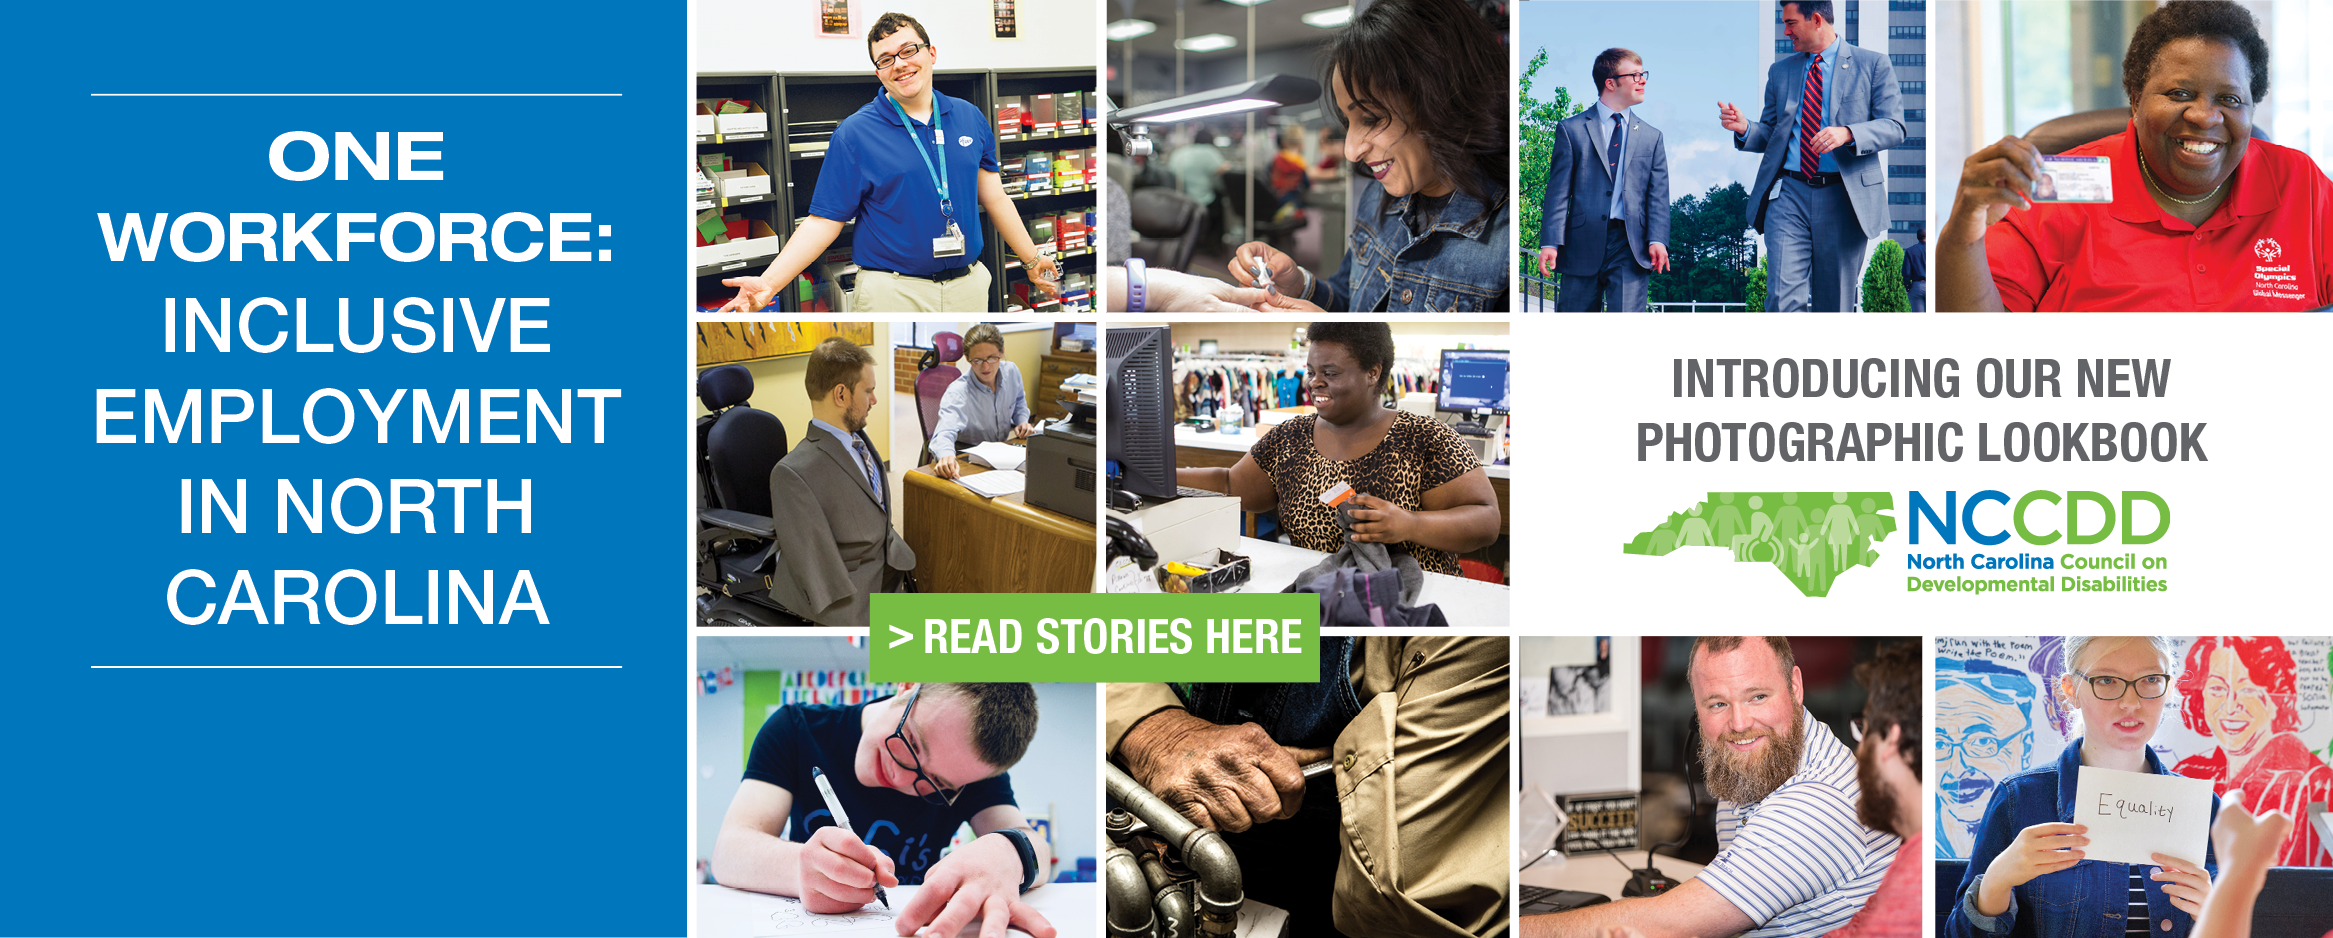 Introducing our new Photographic Lookbook - One Workforce: Inclusive Employment in North Carolina